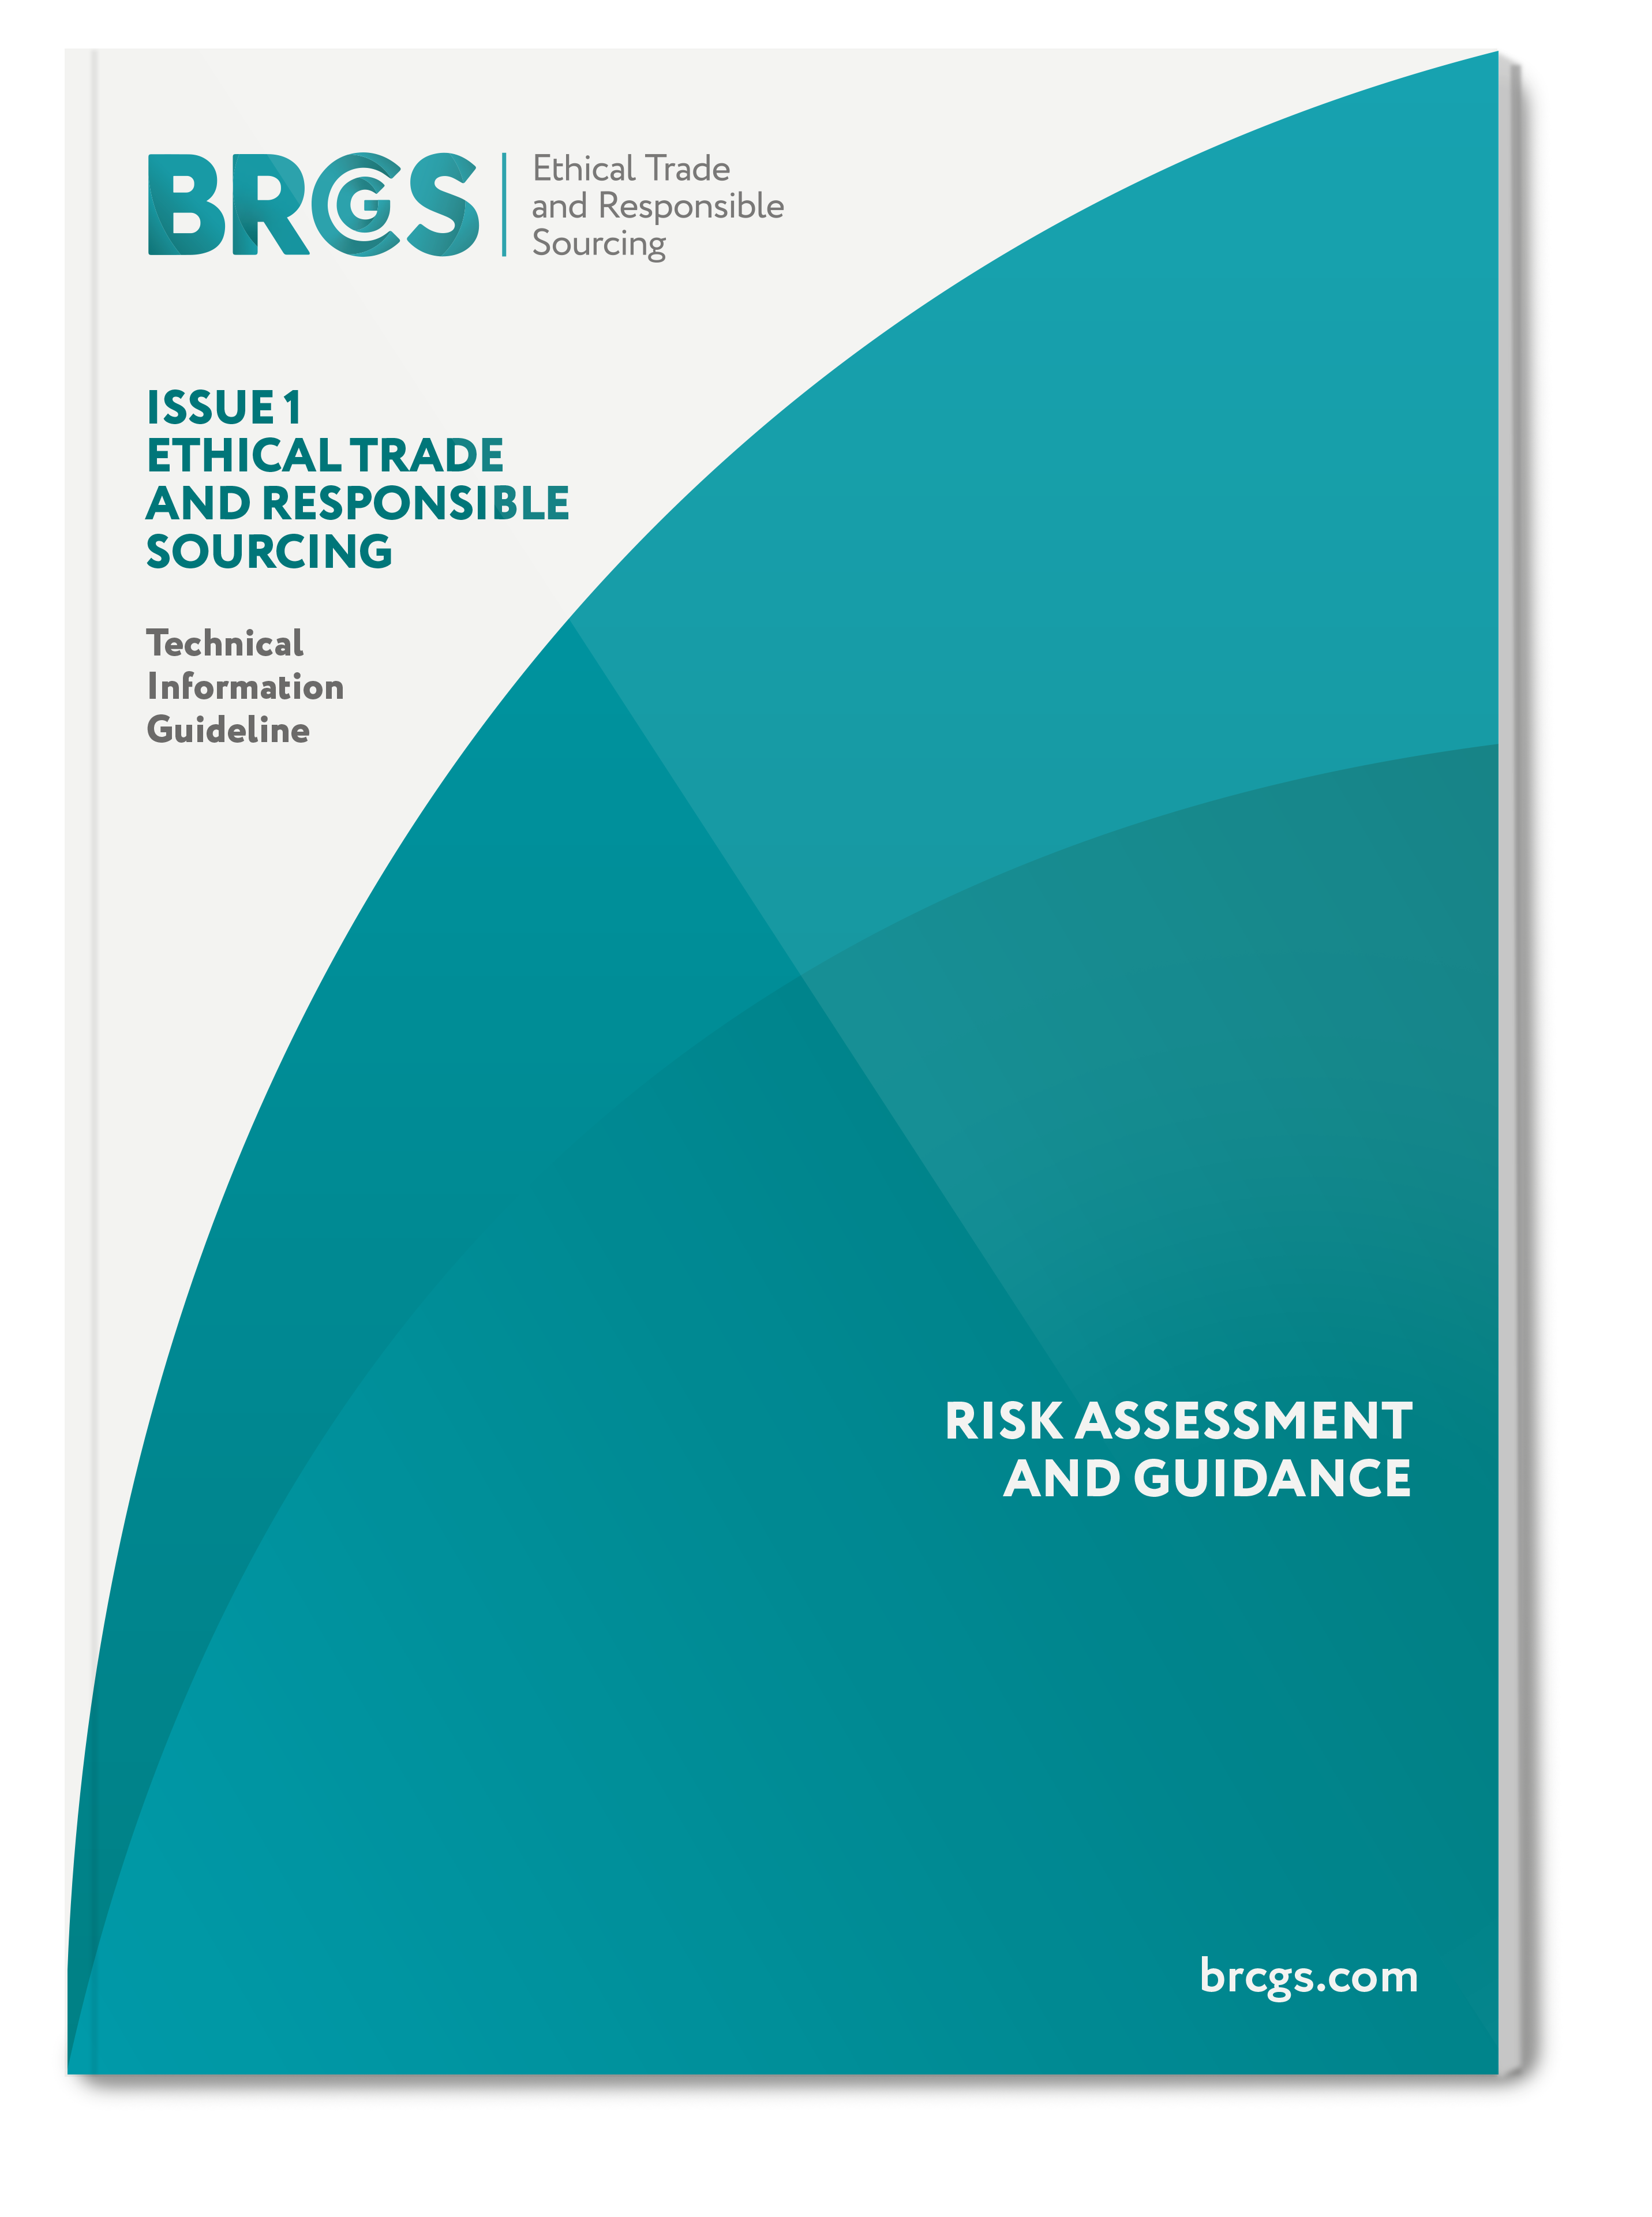 Ethical Trade and Responsible Sourcing Risk Assessment Module and Guidance